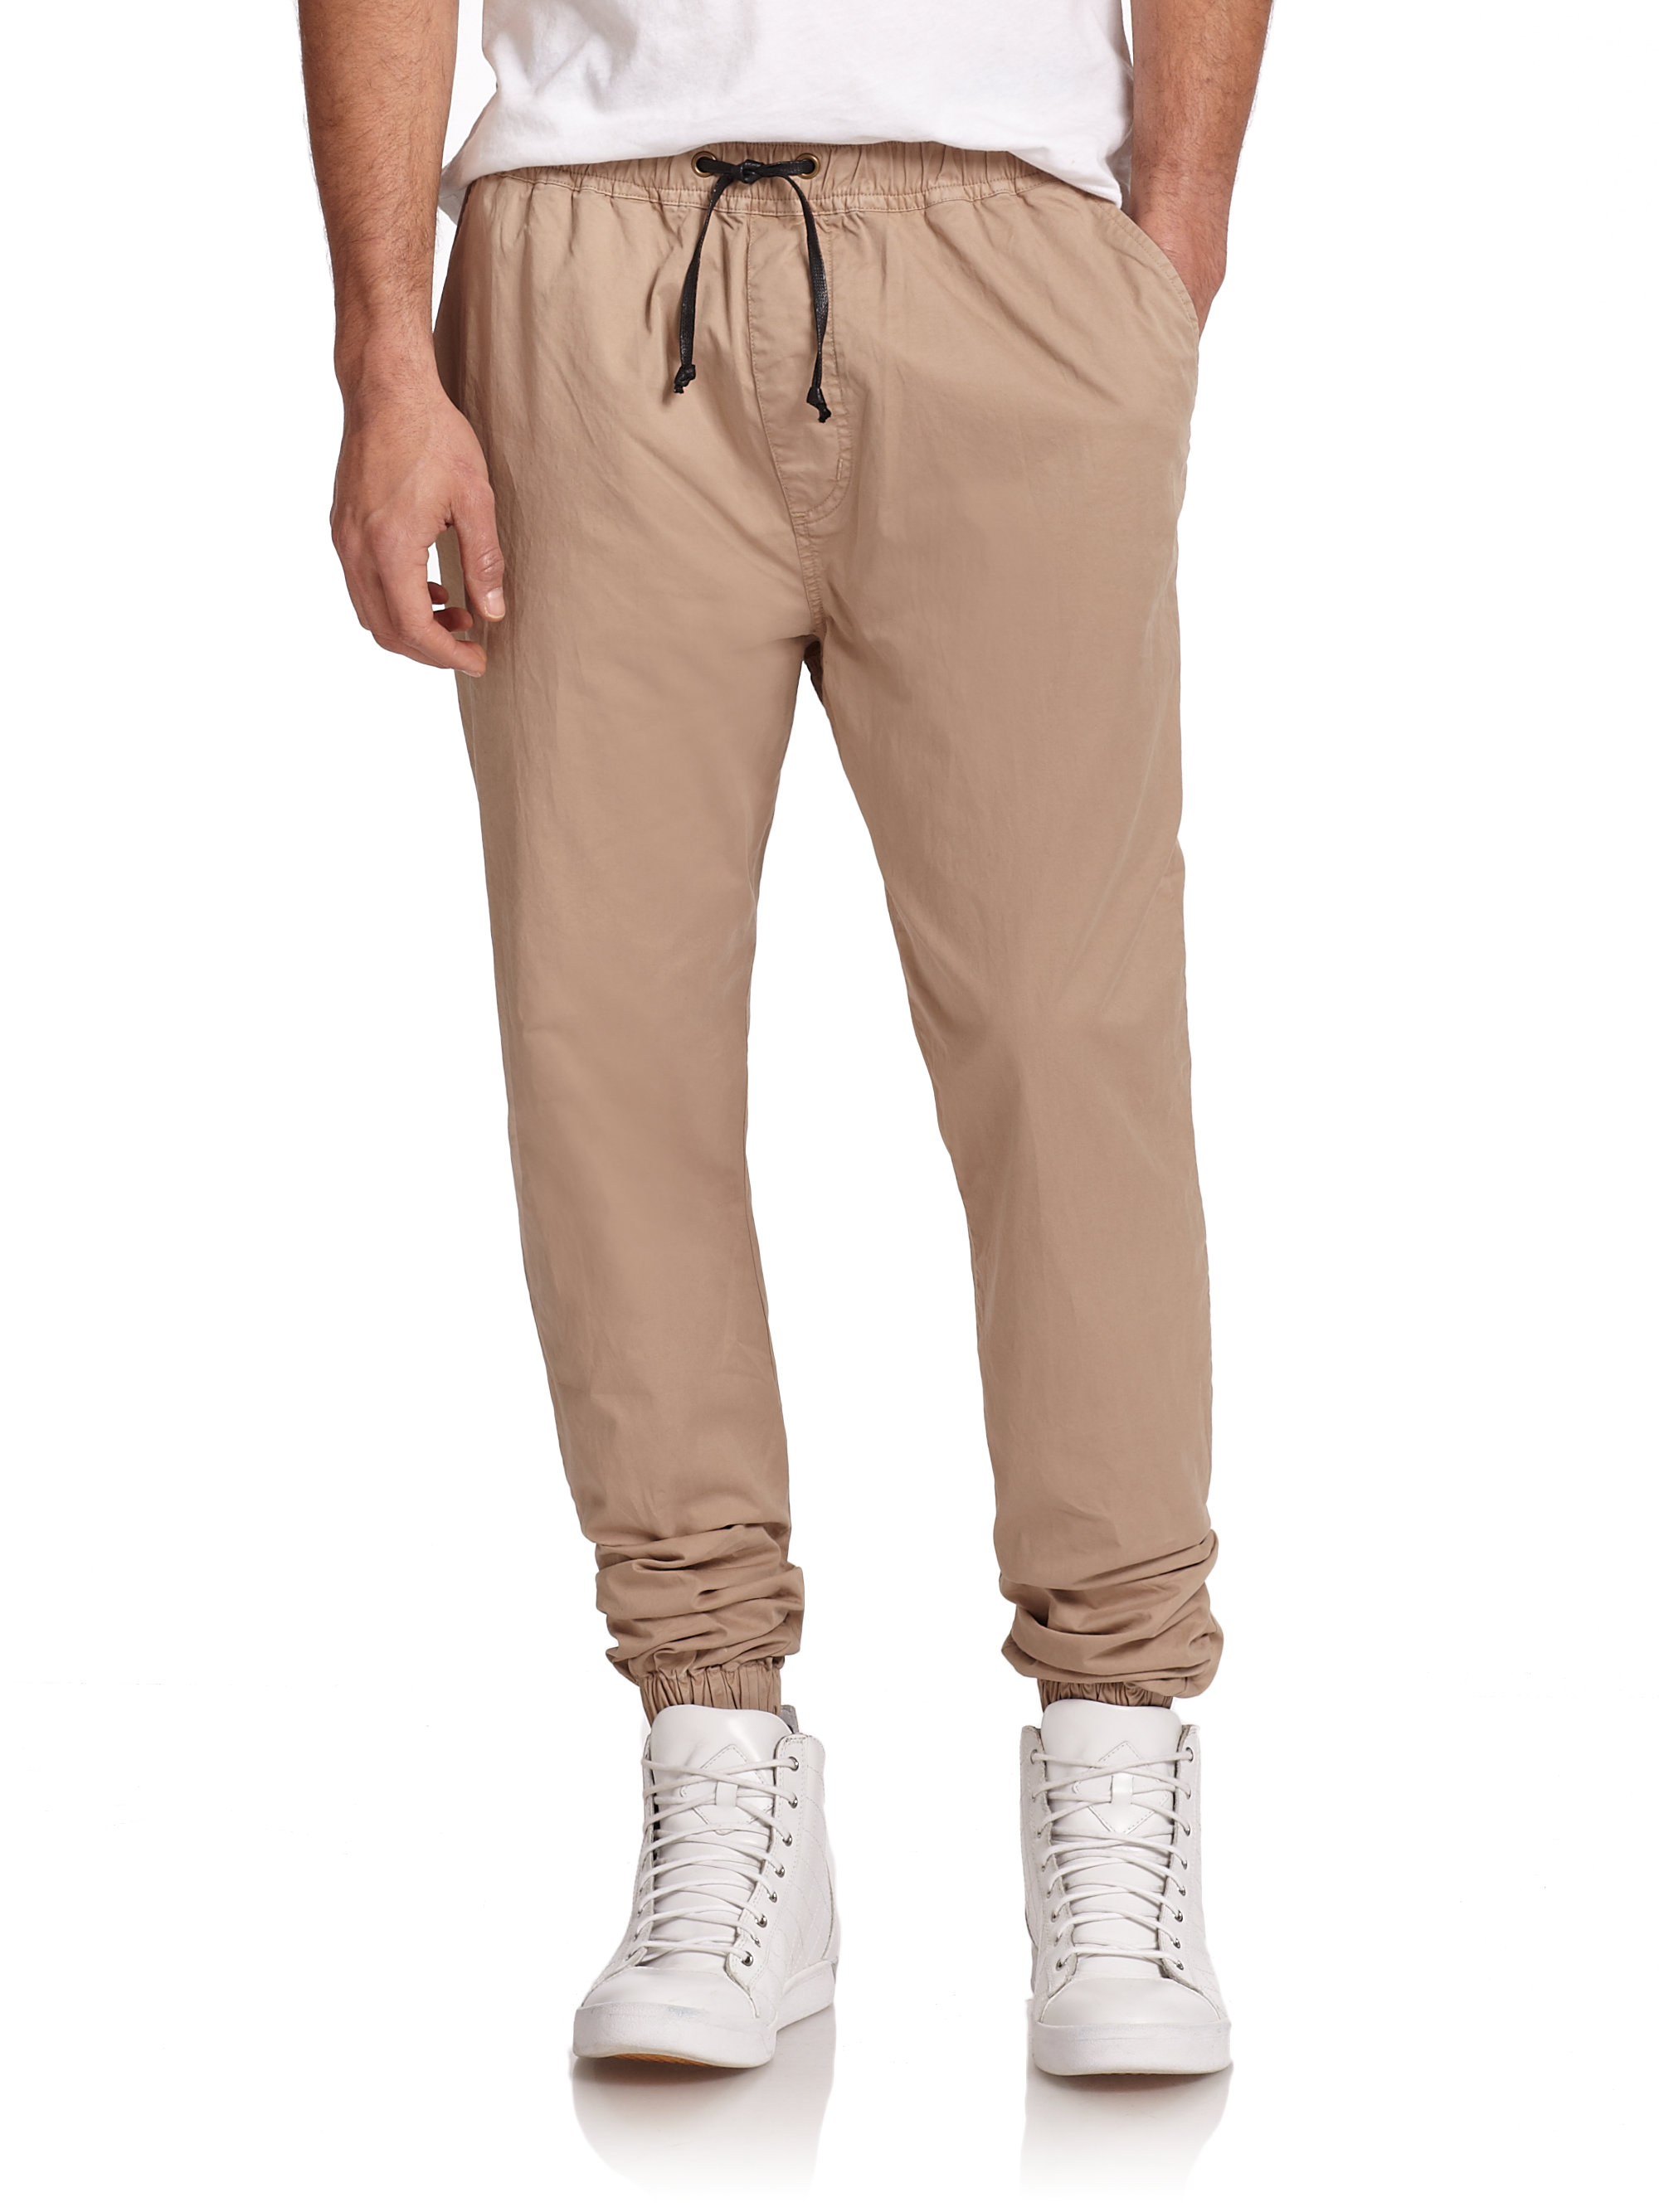 Mens Drawstring Khaki Pants 26